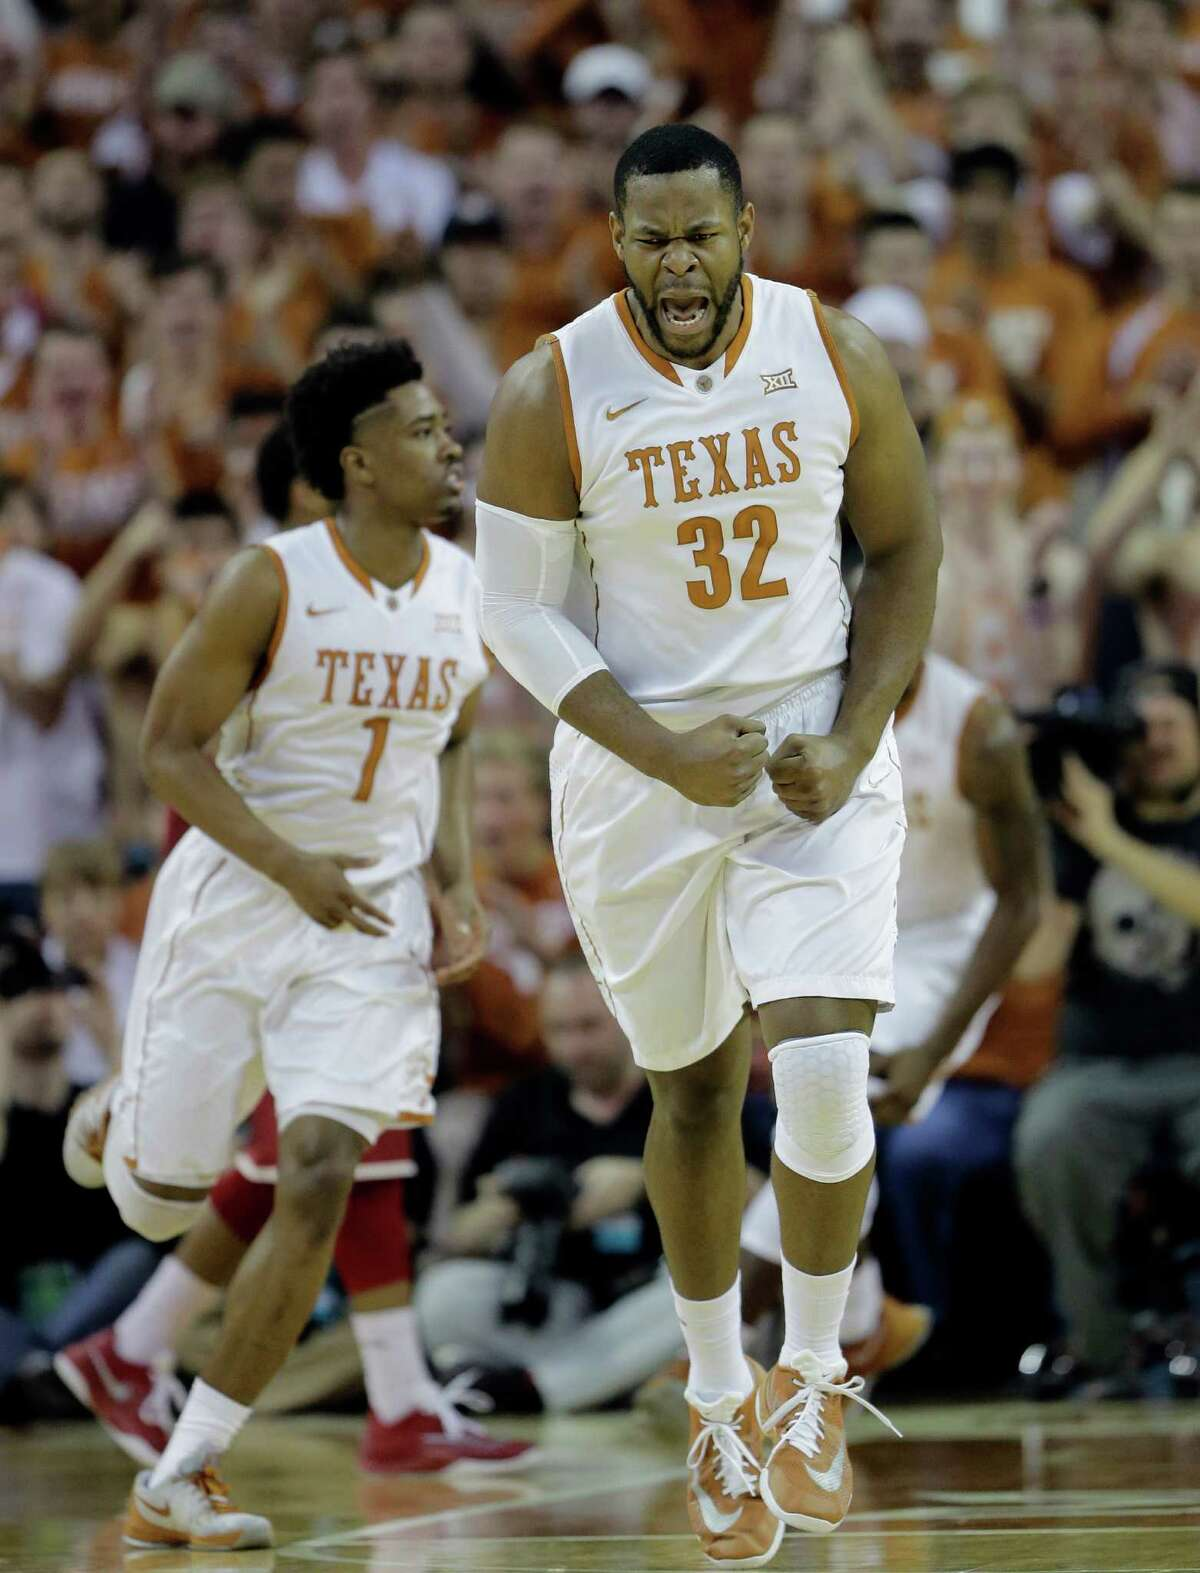 Texas forward Shaquille Cleare (32) celebrates a score against Oklahoma during the first half of an NCAA college basketball game, Saturday, Feb. 27, 2016, in Austin, Texas. (AP Photo/Eric Gay)